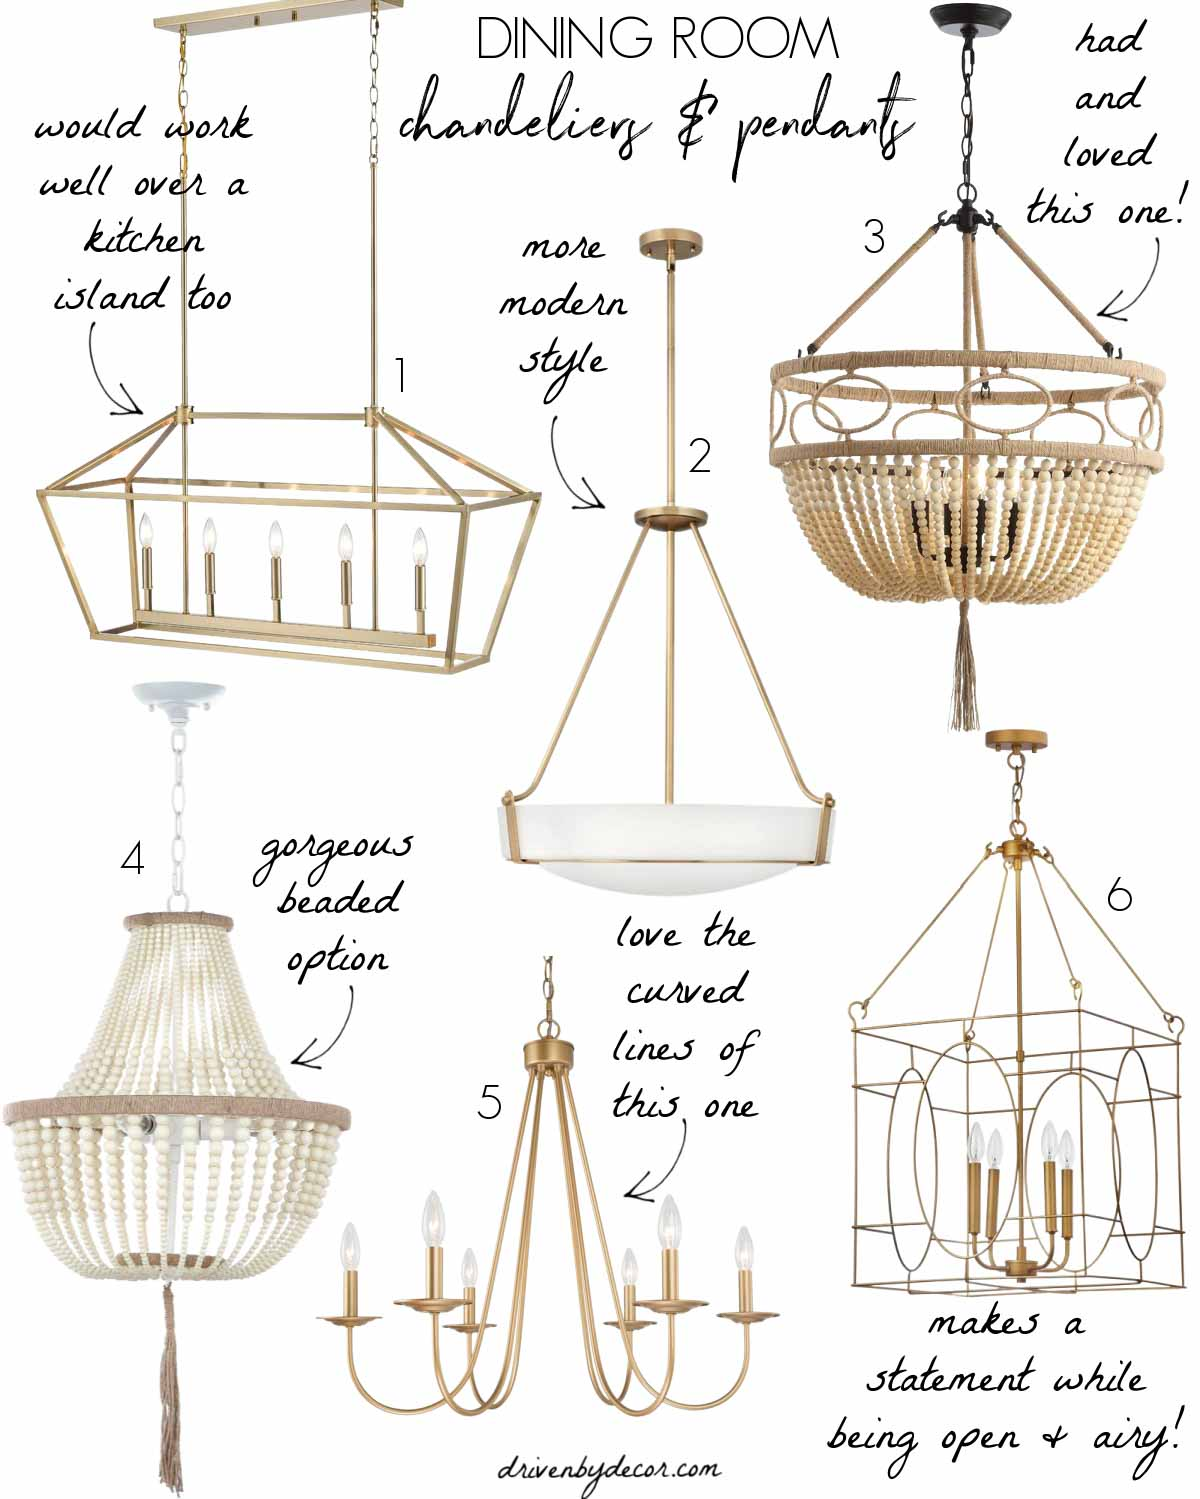 Favorite dining room chandeliers and pendants!